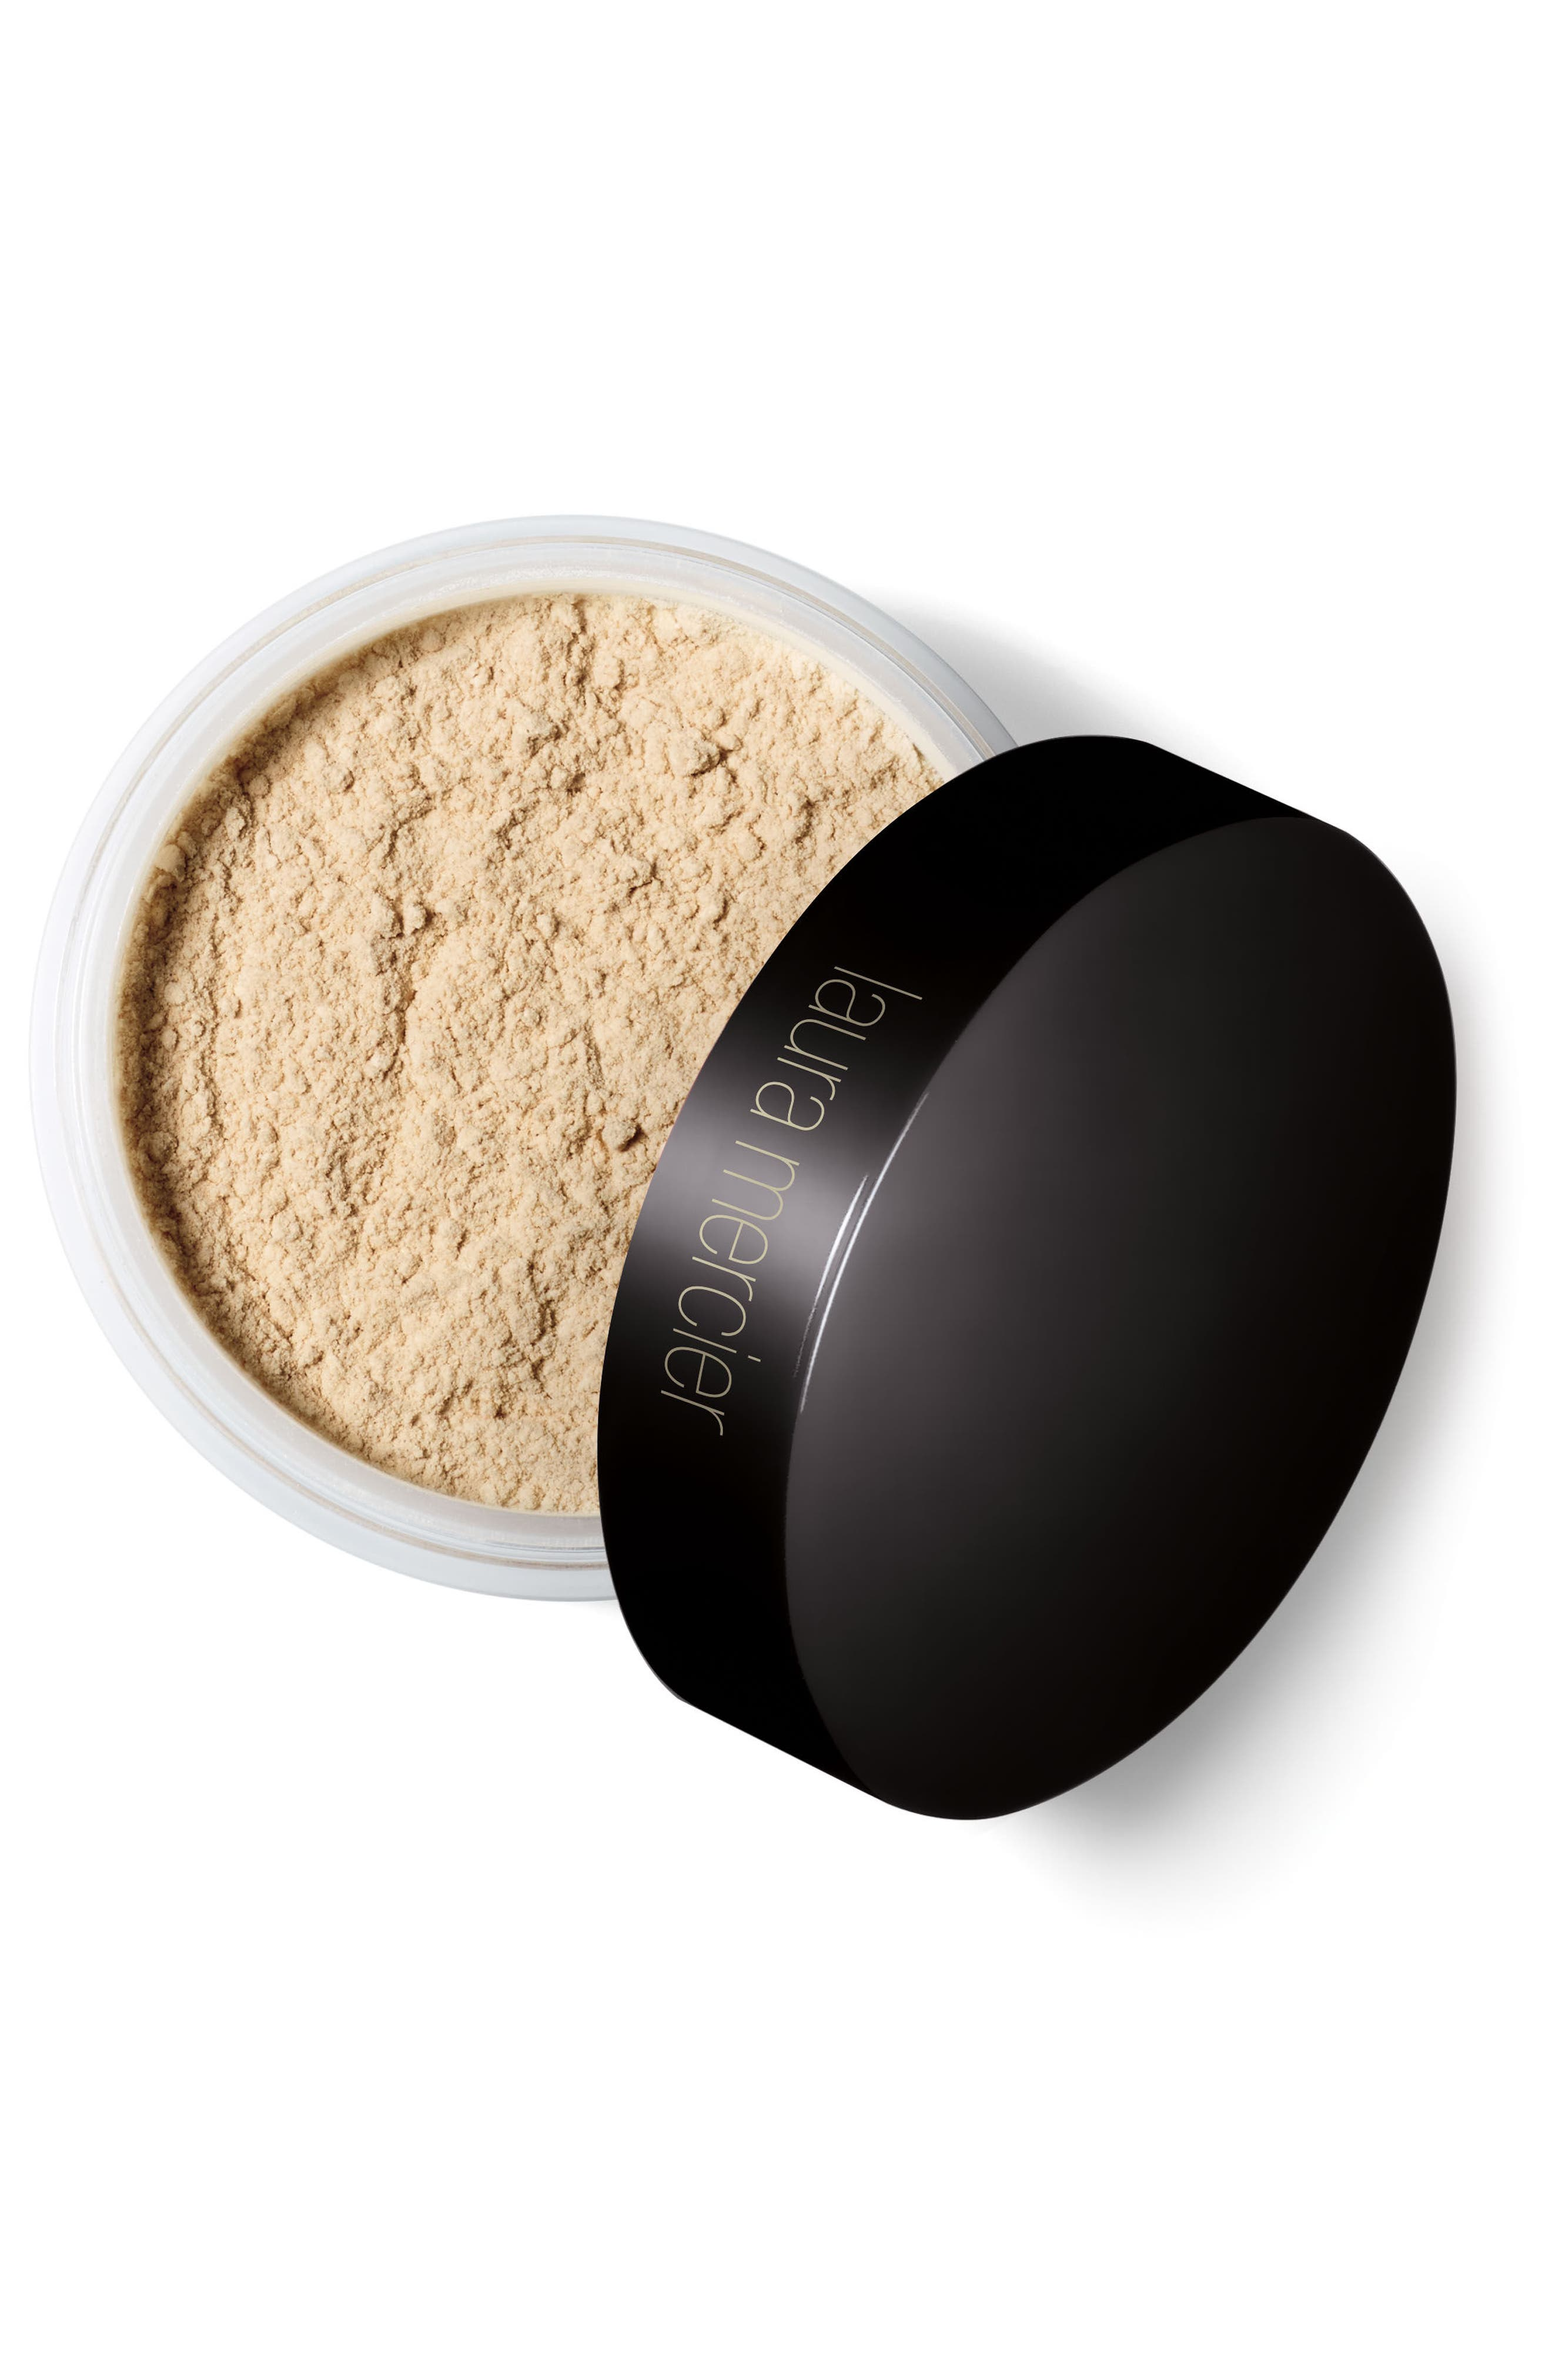 LAURA MERCIER, Translucent Loose Setting Powder, Main thumbnail 1, color, TRANSLUCENT